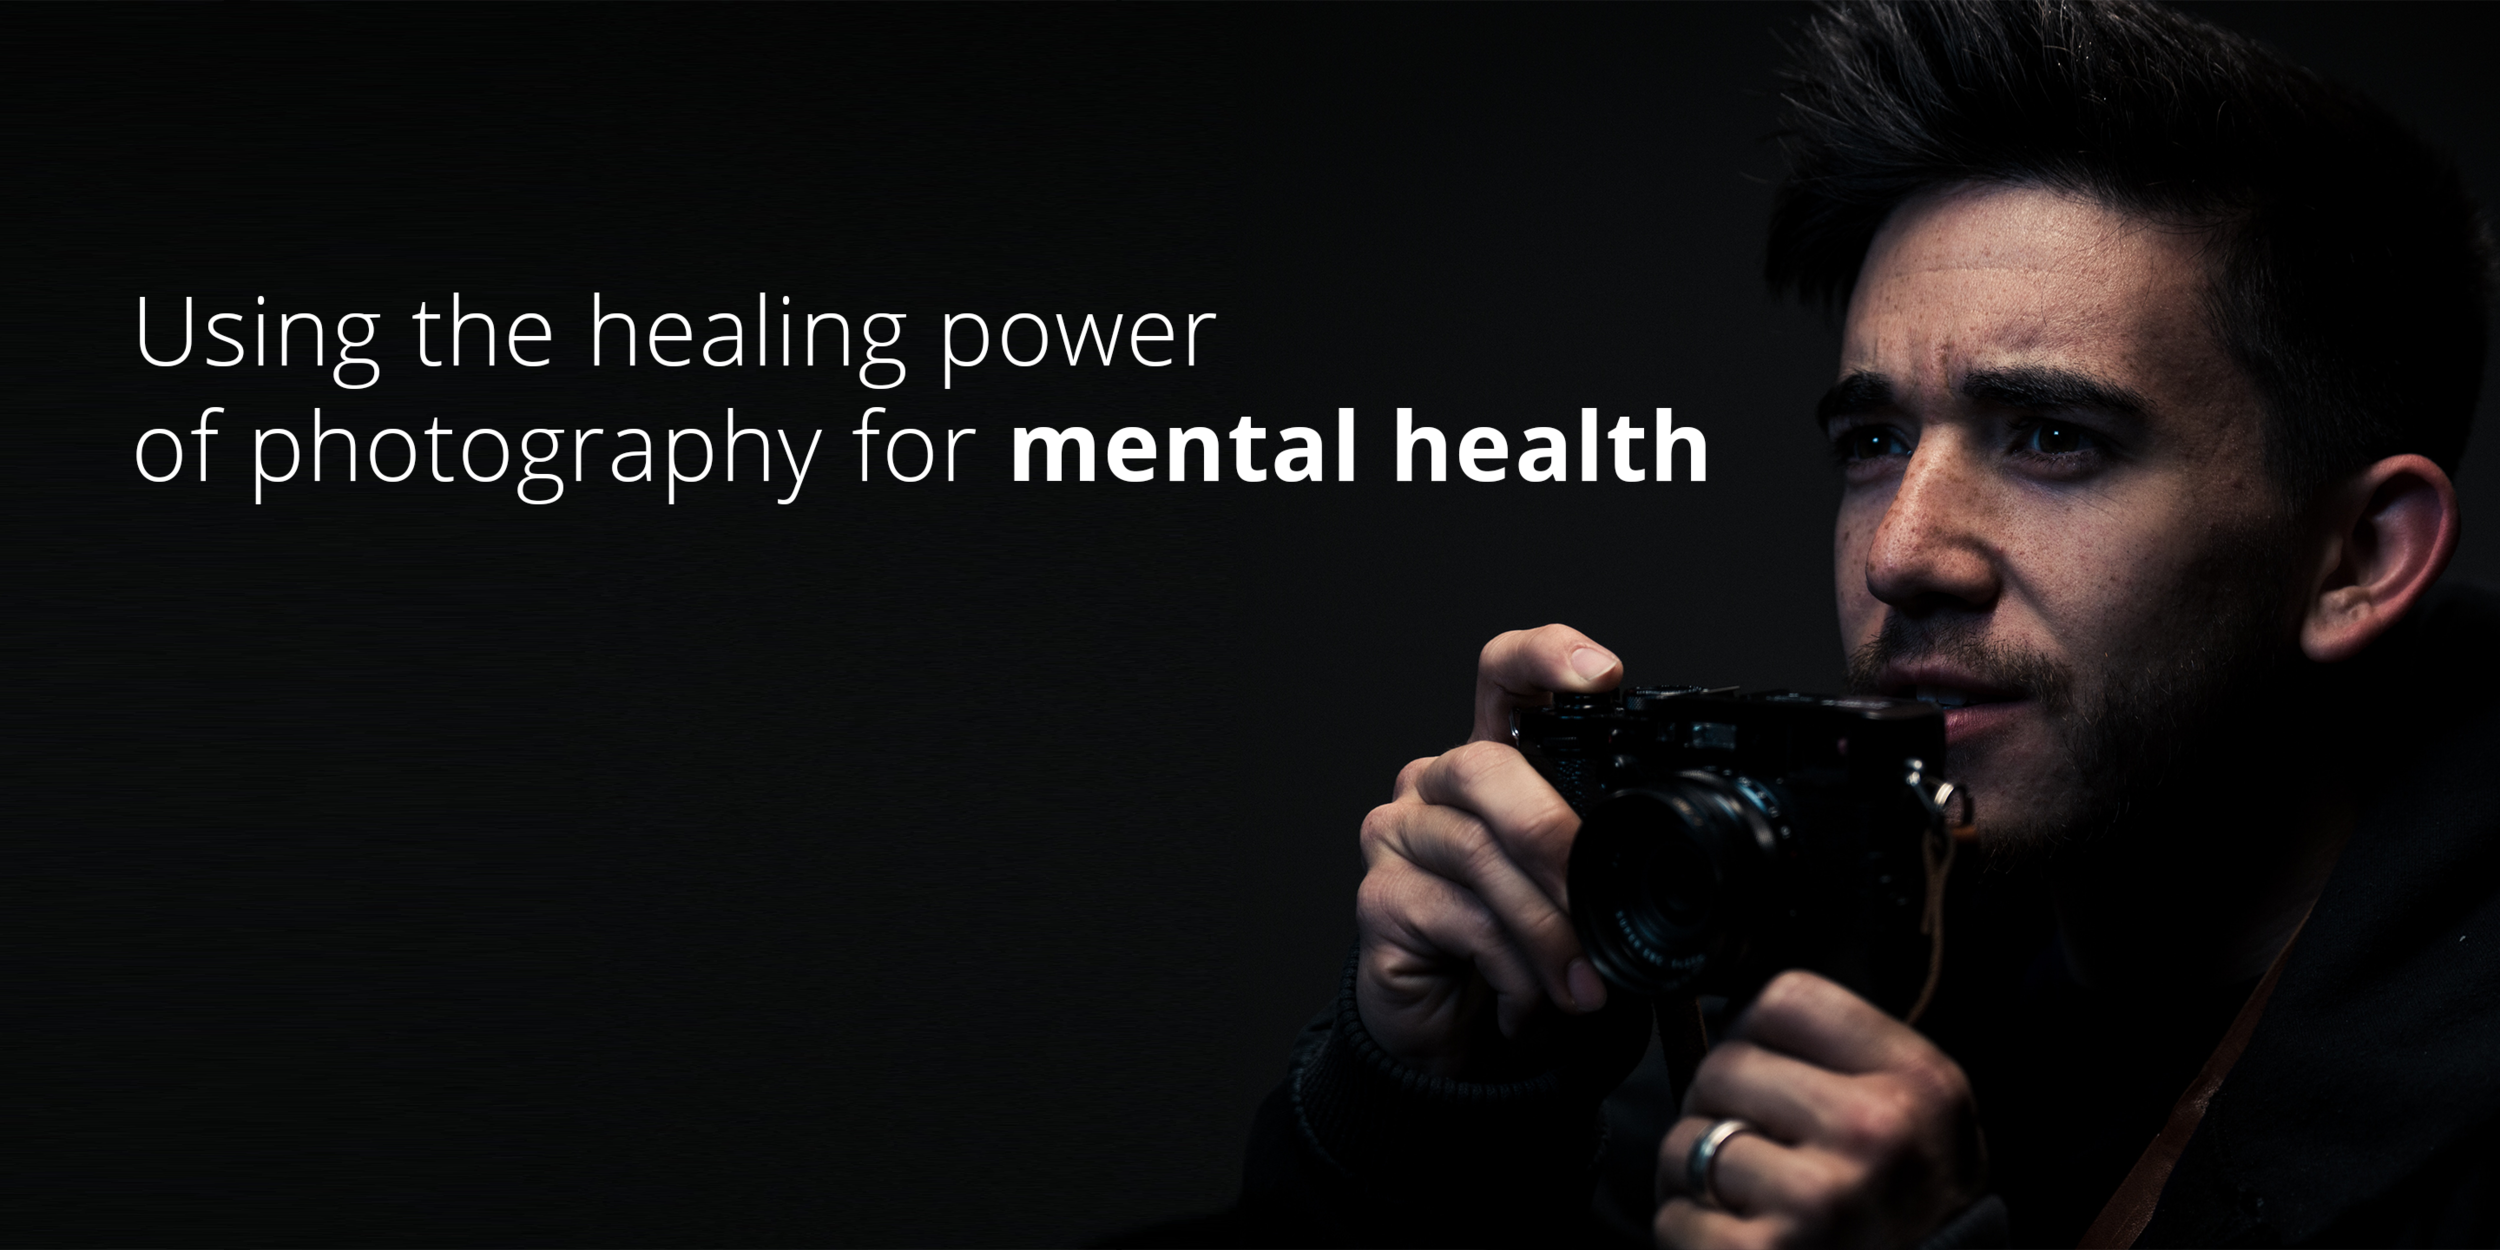 theoneproject-app-mentalhealth-photography-supportgroup-1.png